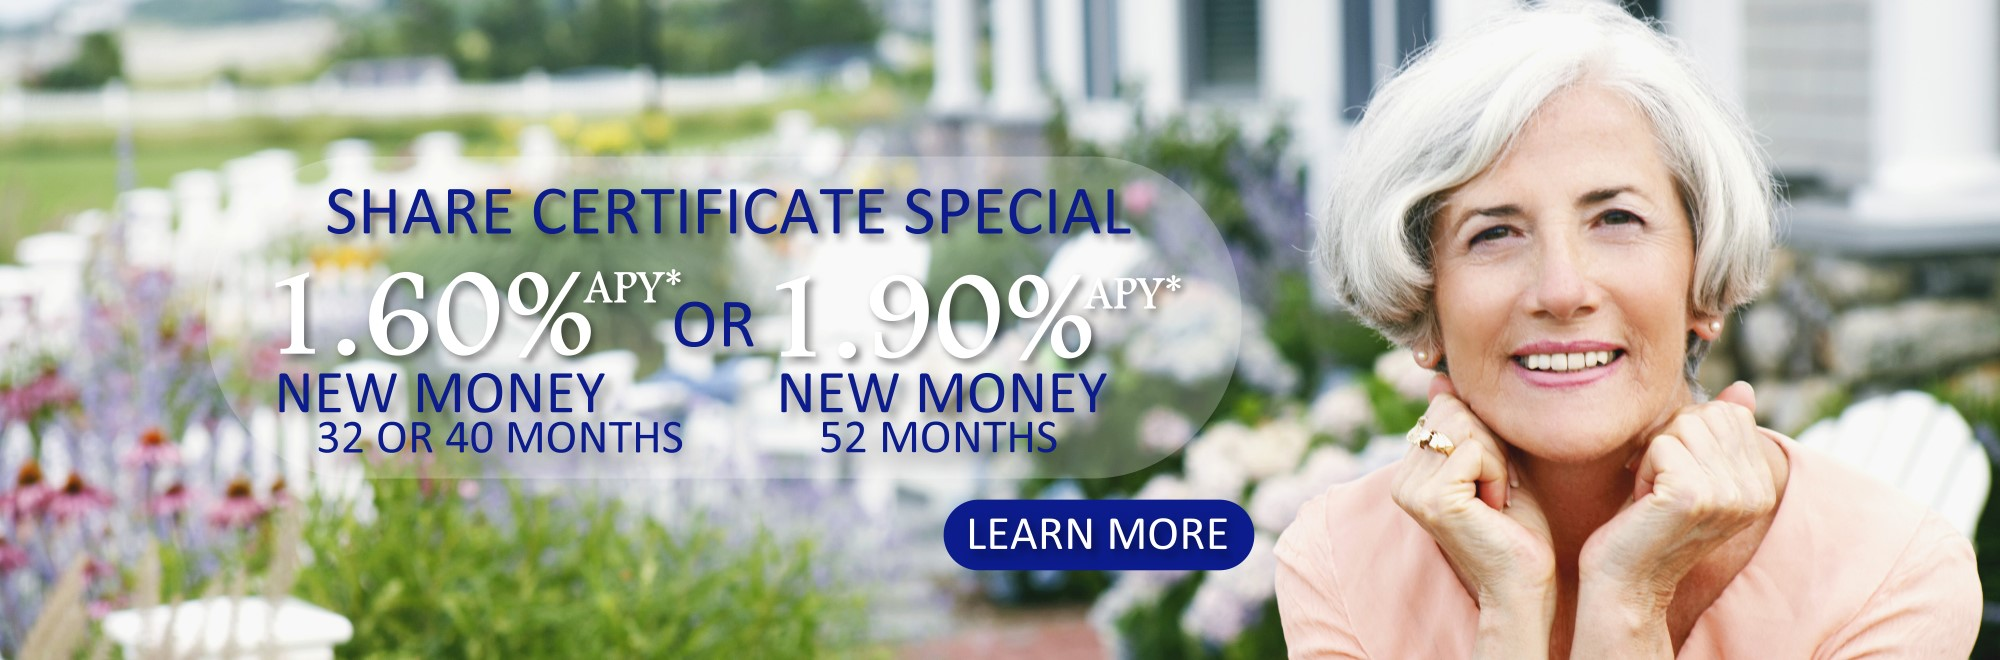 Share Certificate Special banner image